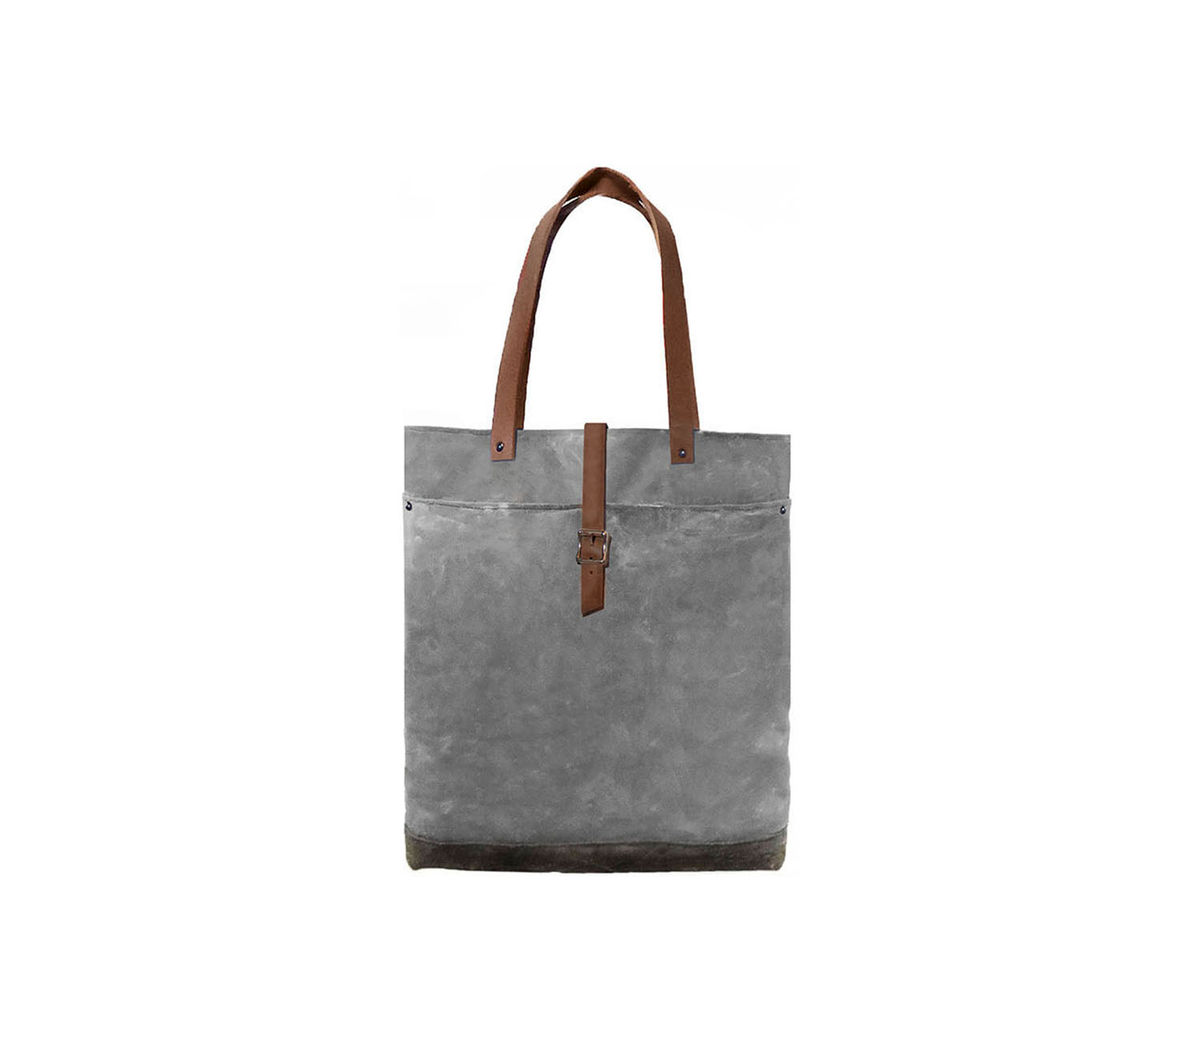 Classic Waxed Canvas Tote w/ Leather Straps in Confederate Grey - product images  of